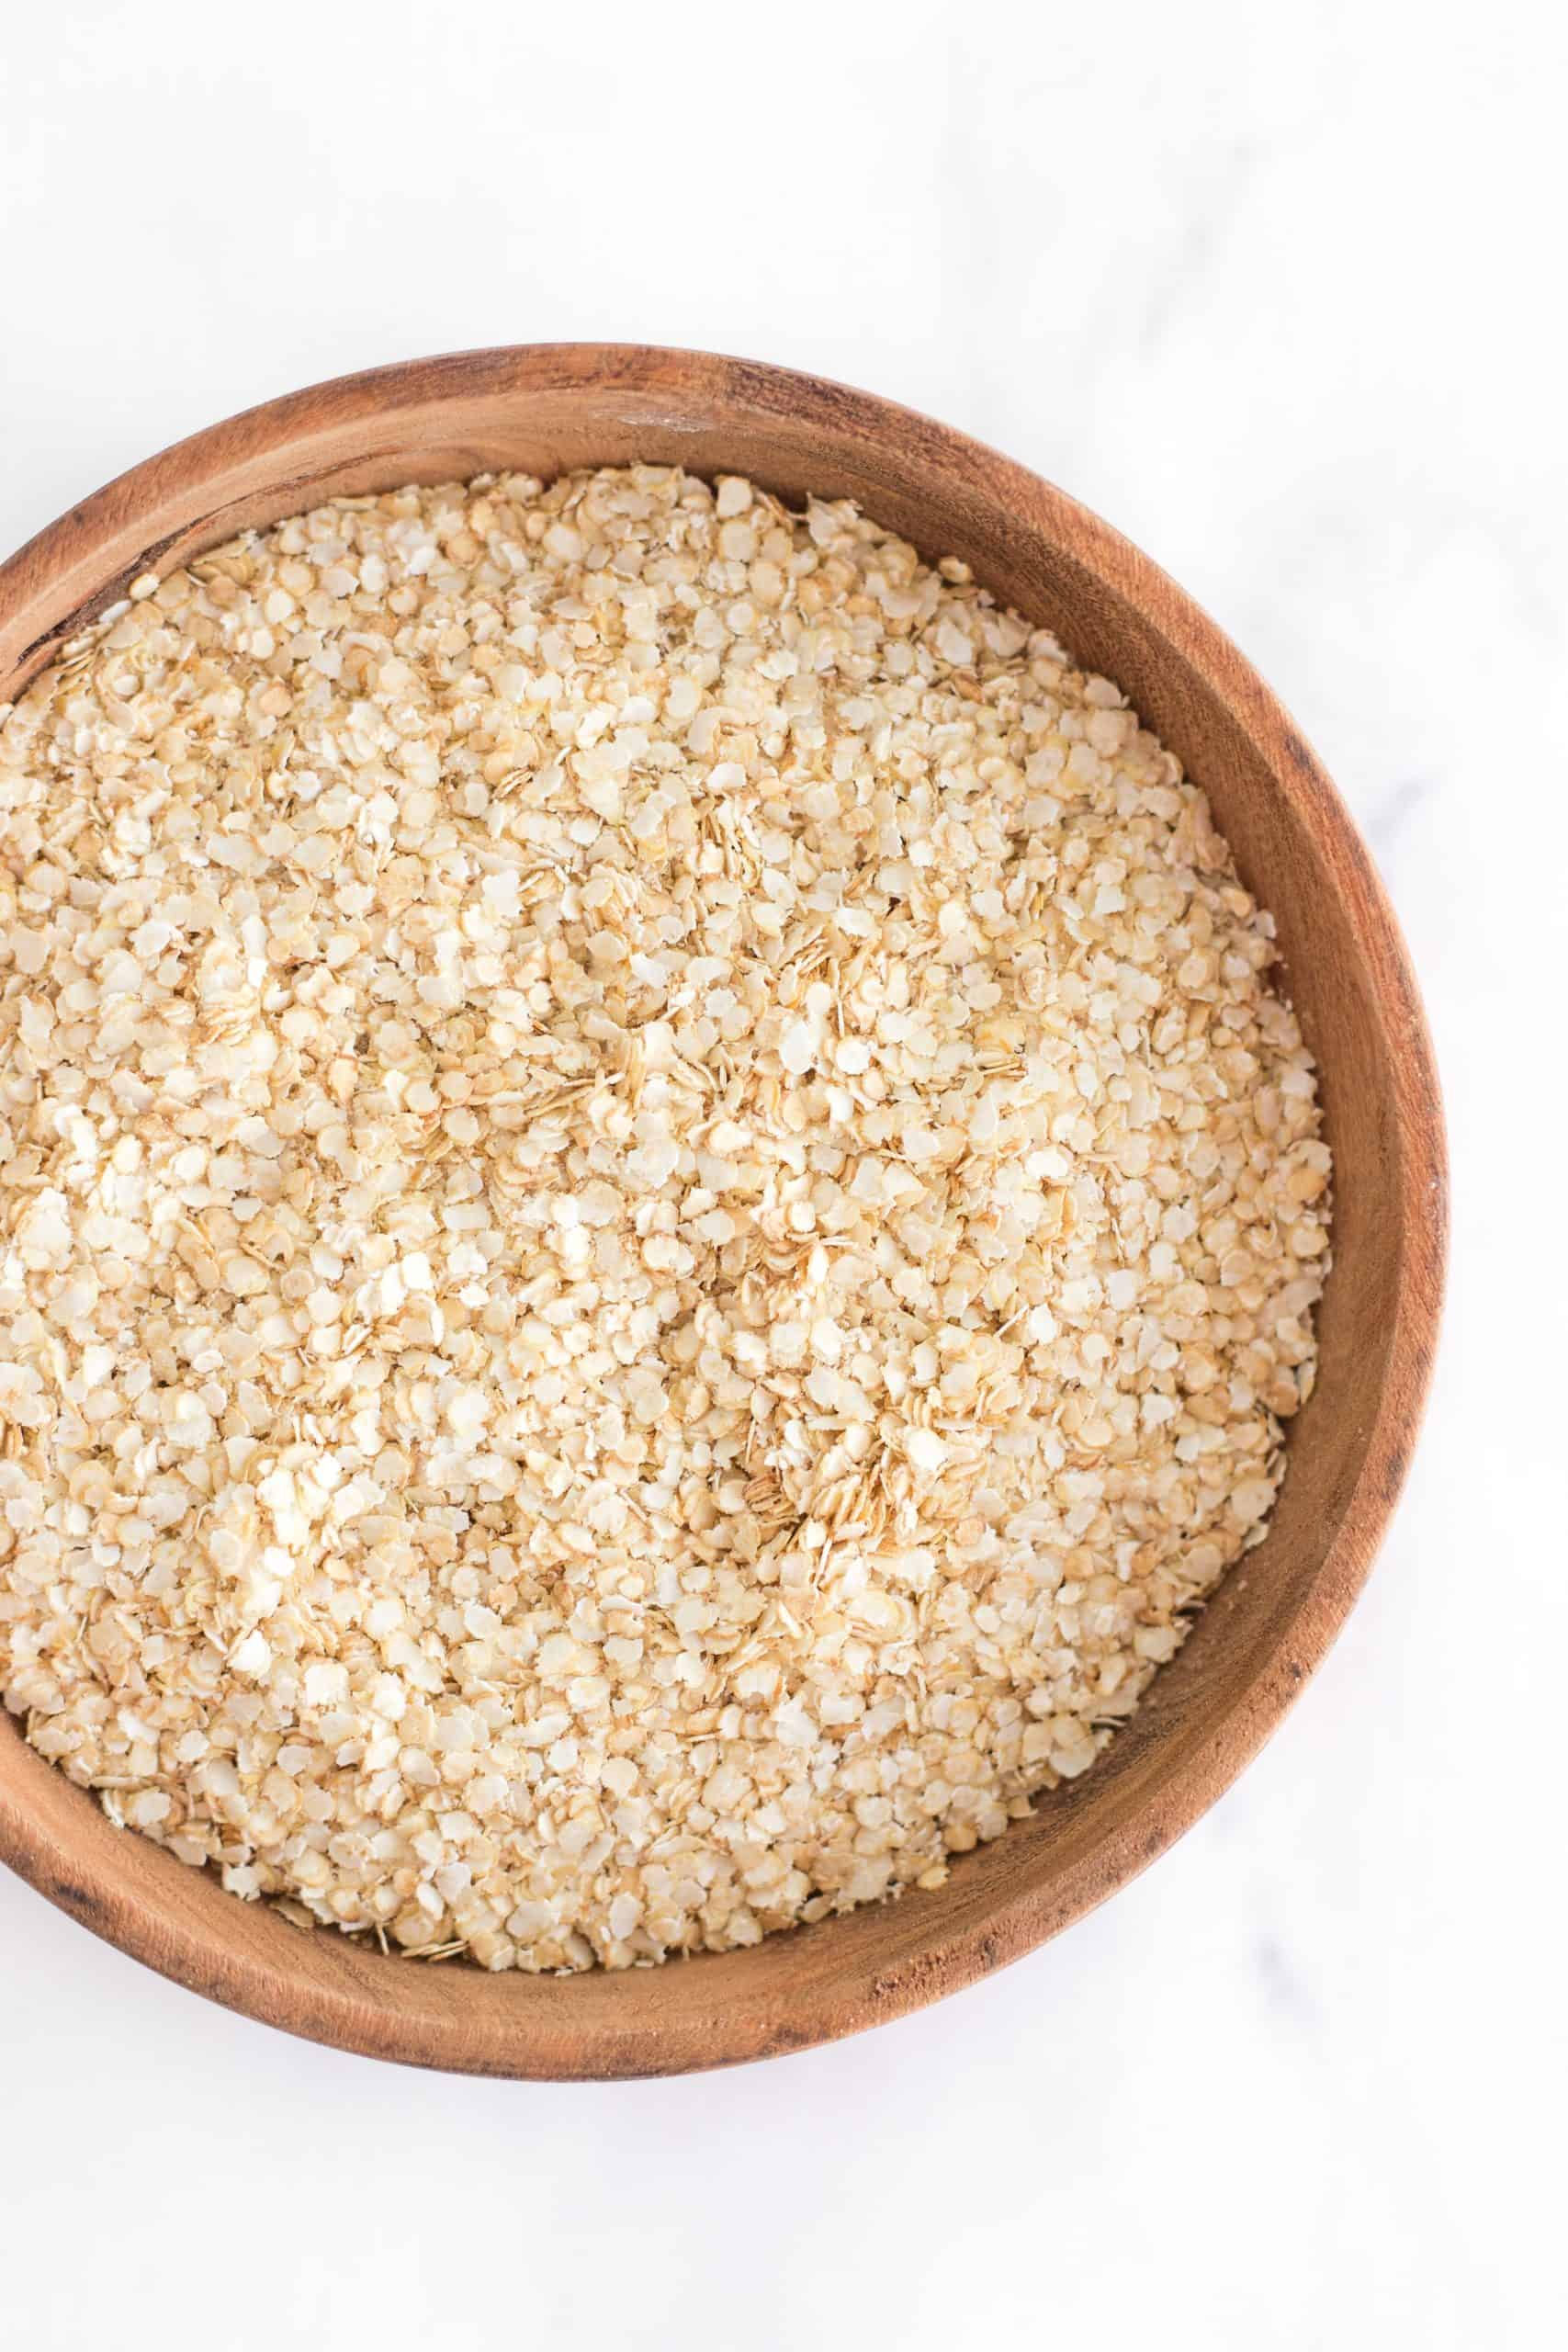 Quinoa flakes in a wooden bowl.